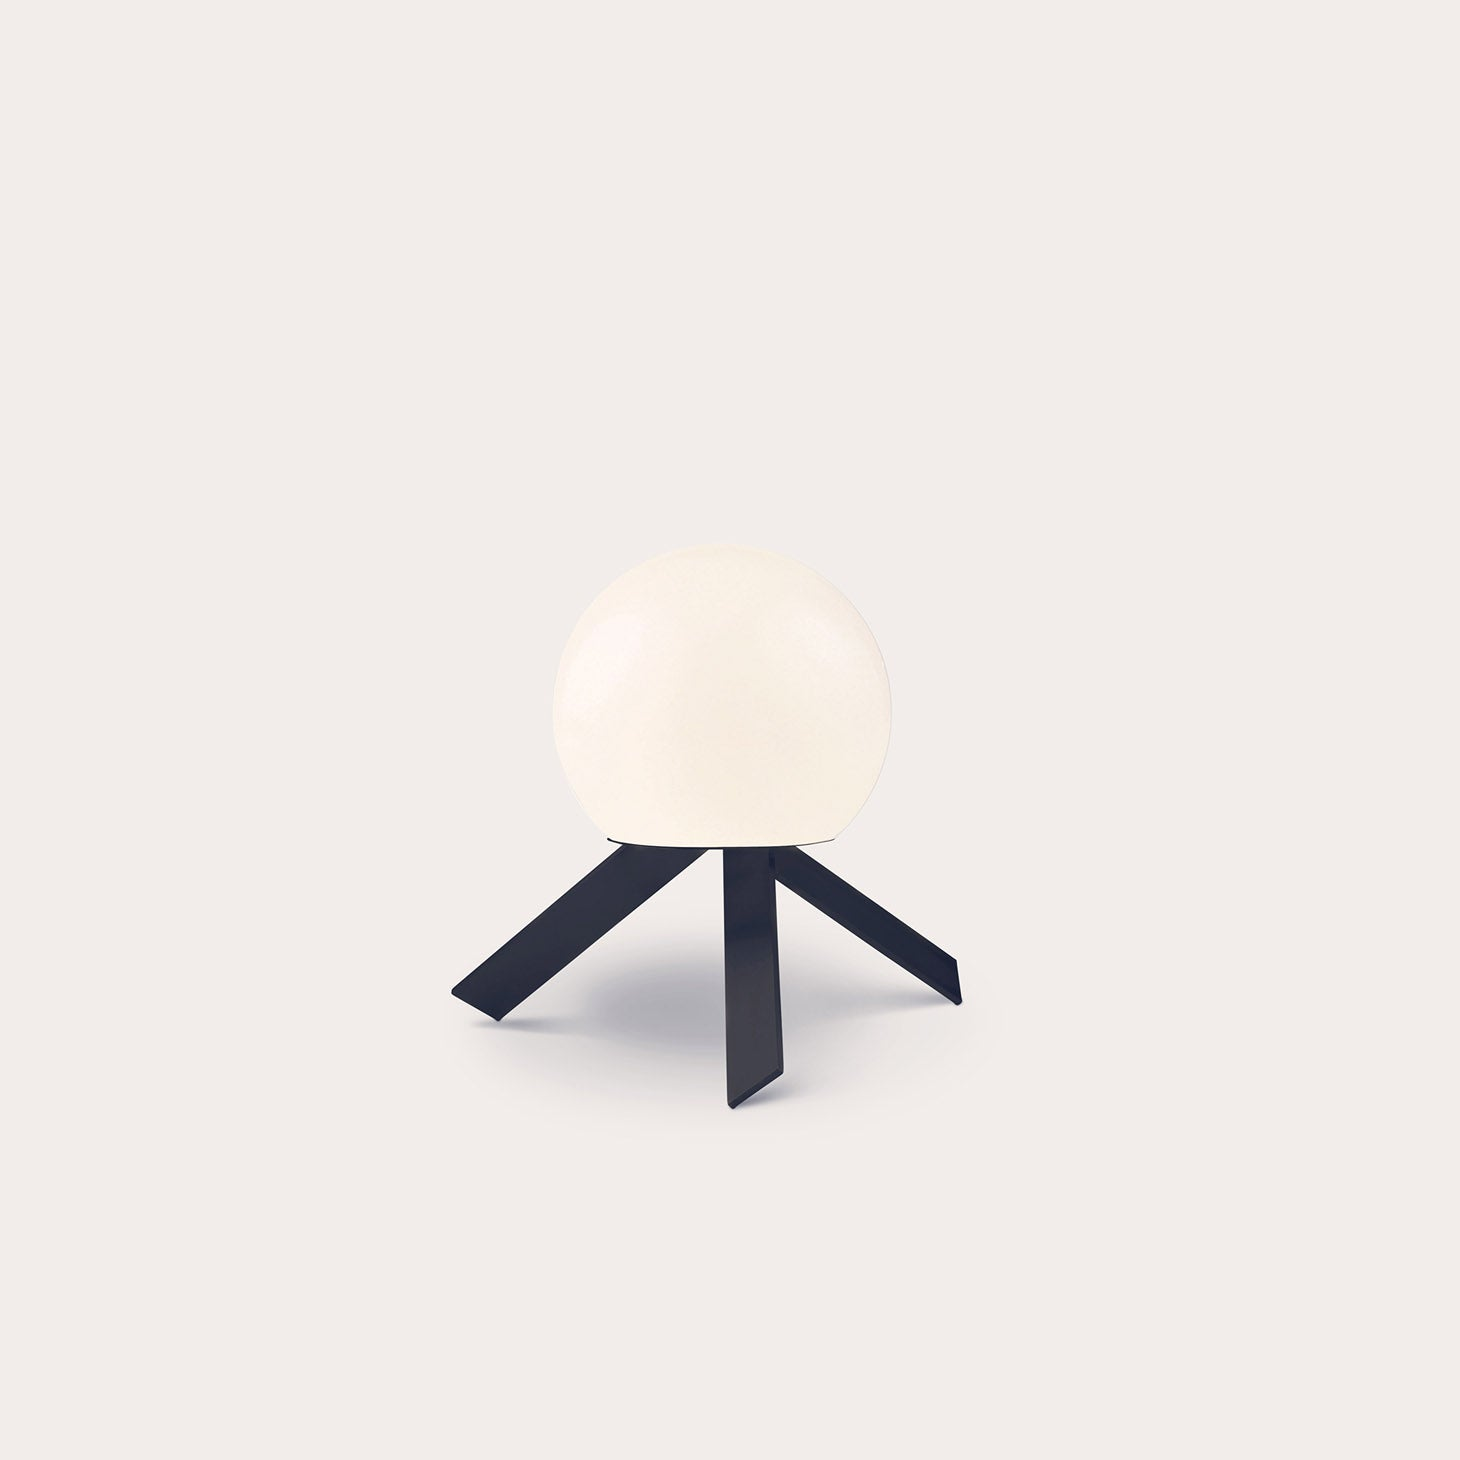 To the Top Lighting Michael Anastassiades Designer Furniture Sku: 717-160-10011